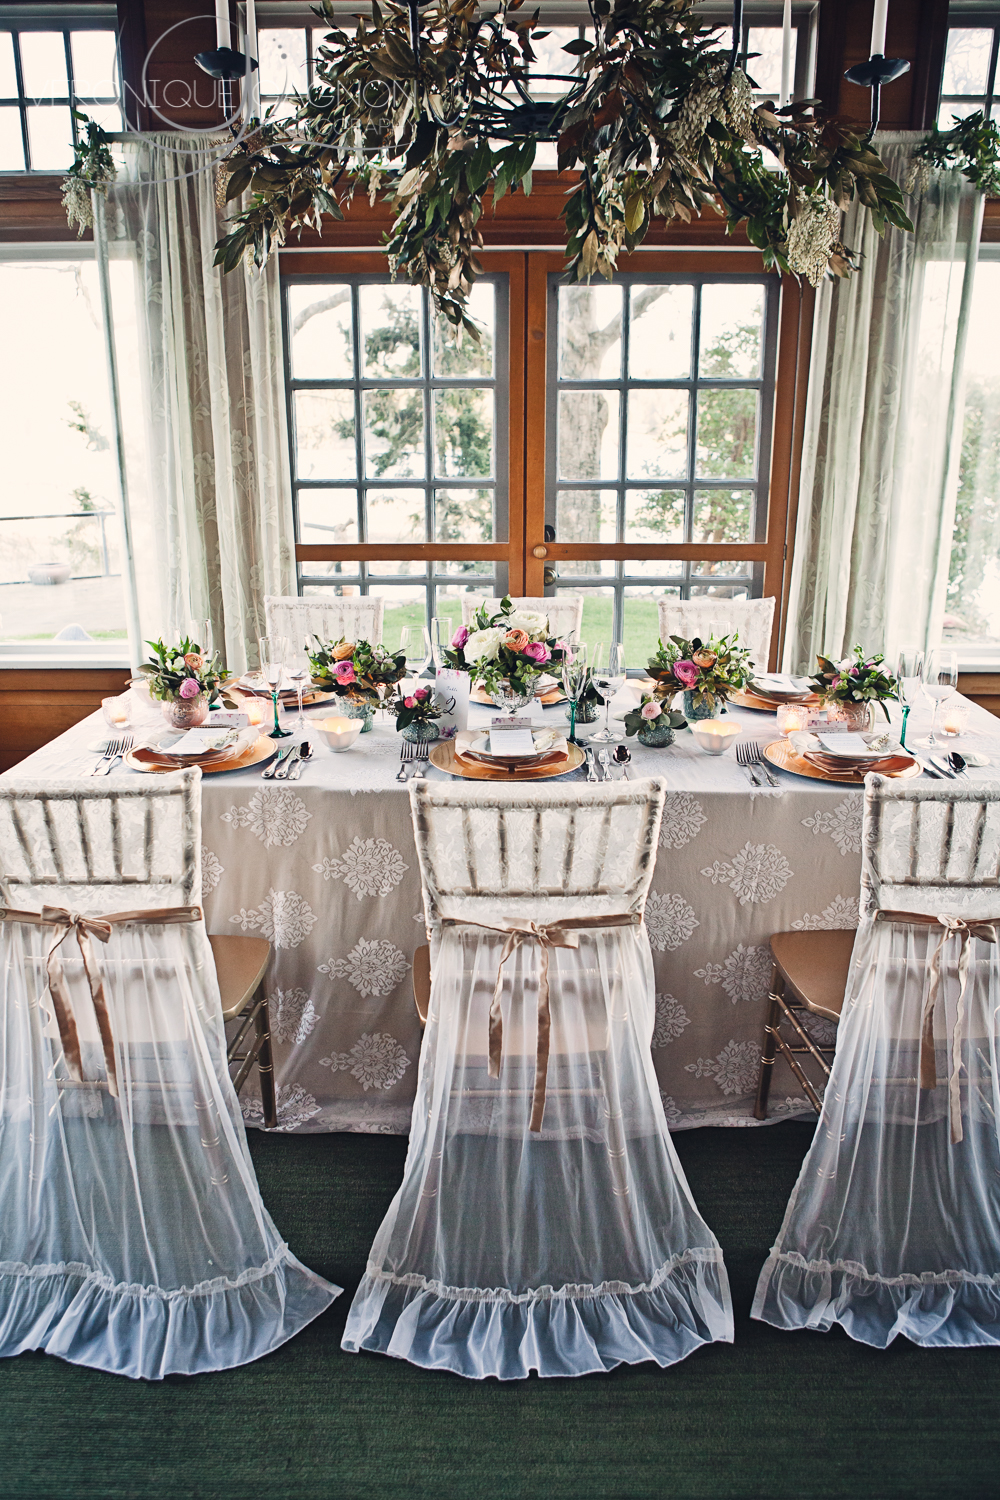 Sheer white chair cover for a romantic look.